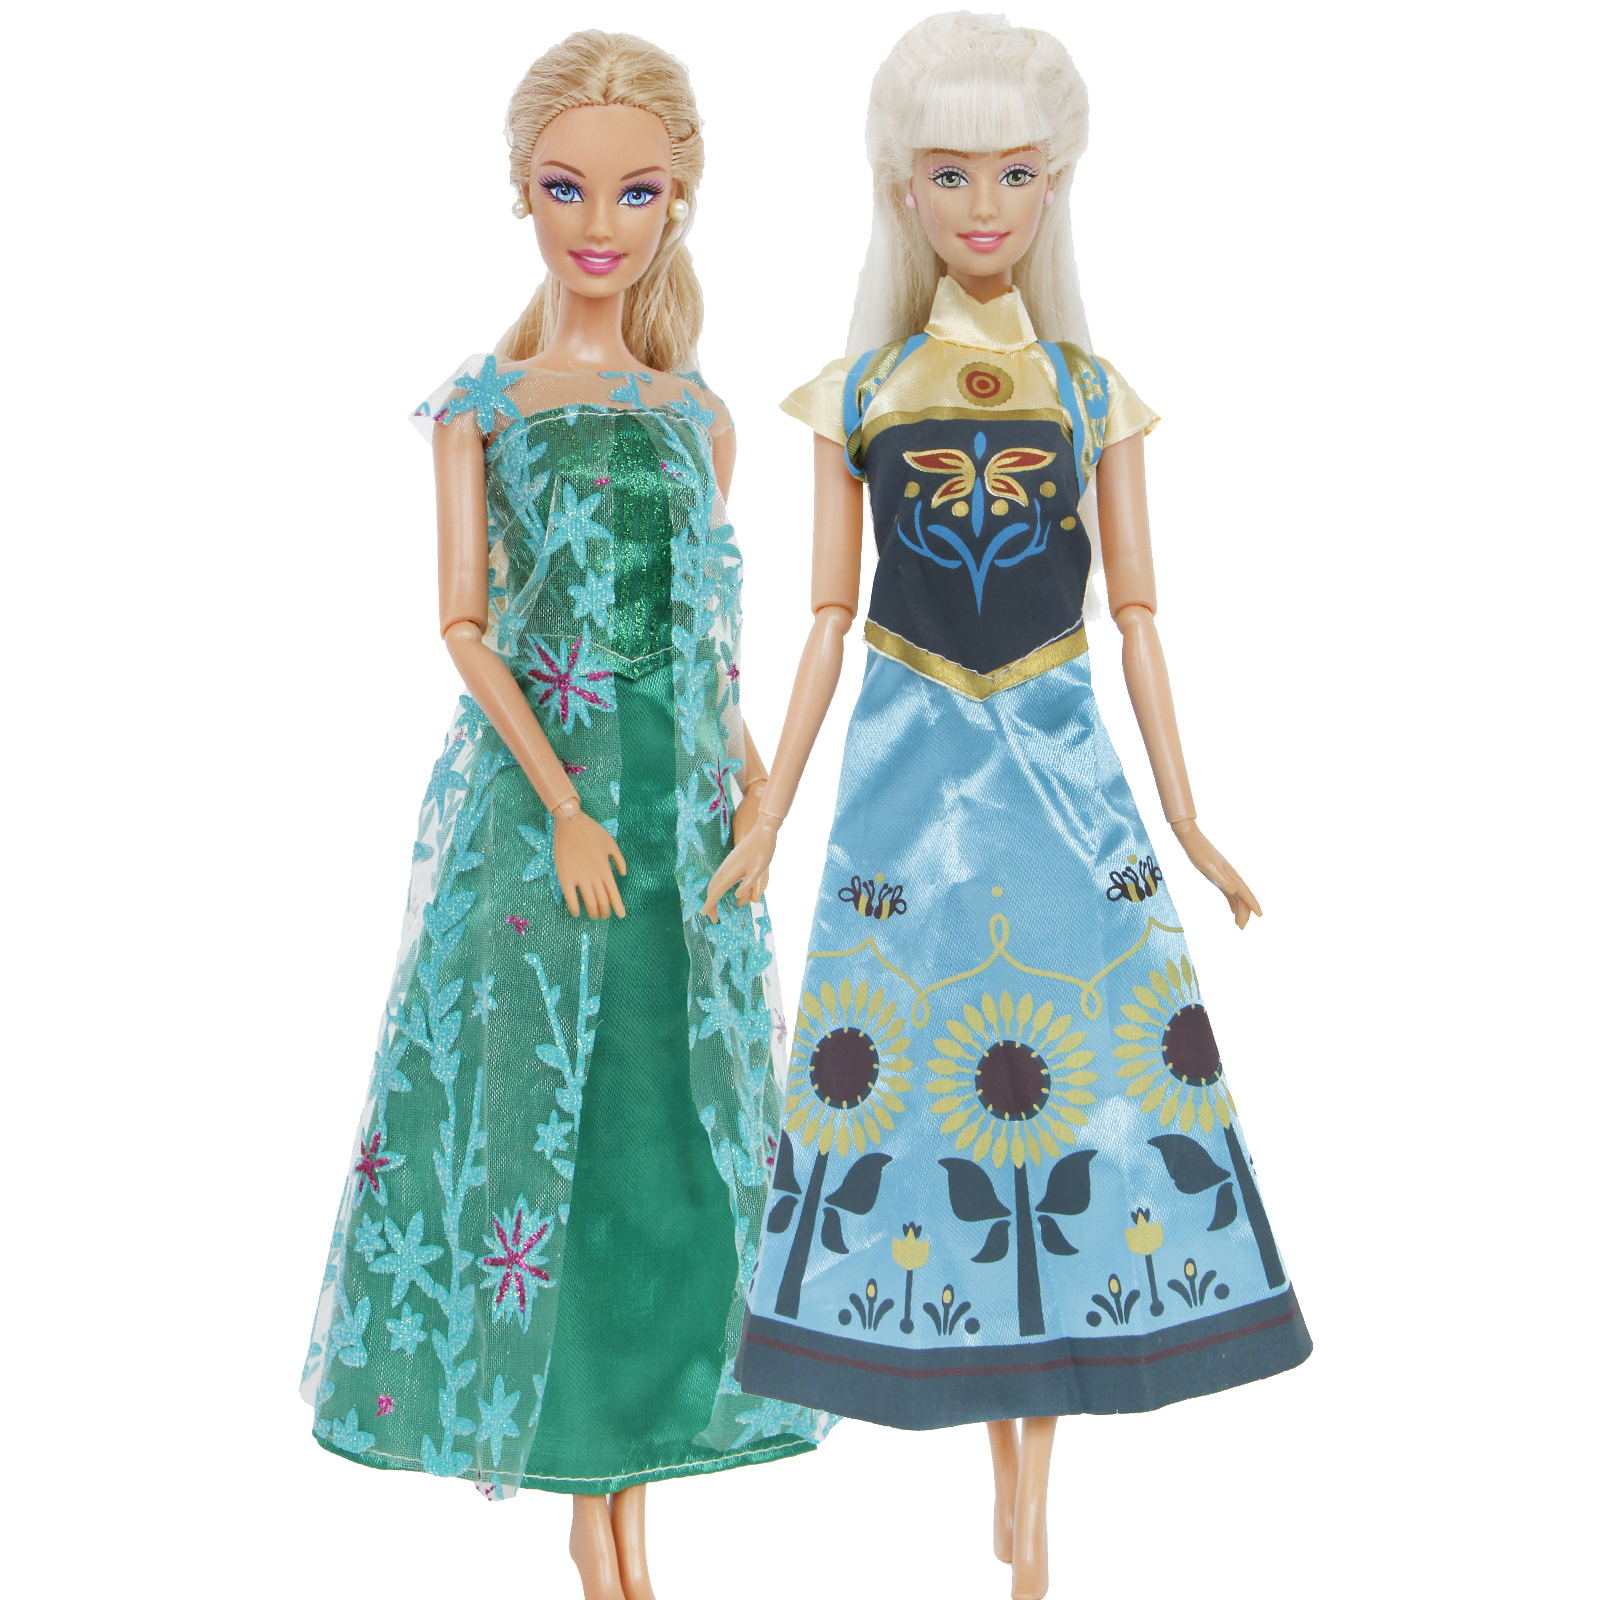 2 Pcs / Set Fairy Tale Princess Dress Elsa+ Anna Wedding Party Wear Twins Clothes For Barbie Doll Accessories 12'' Kids Toy